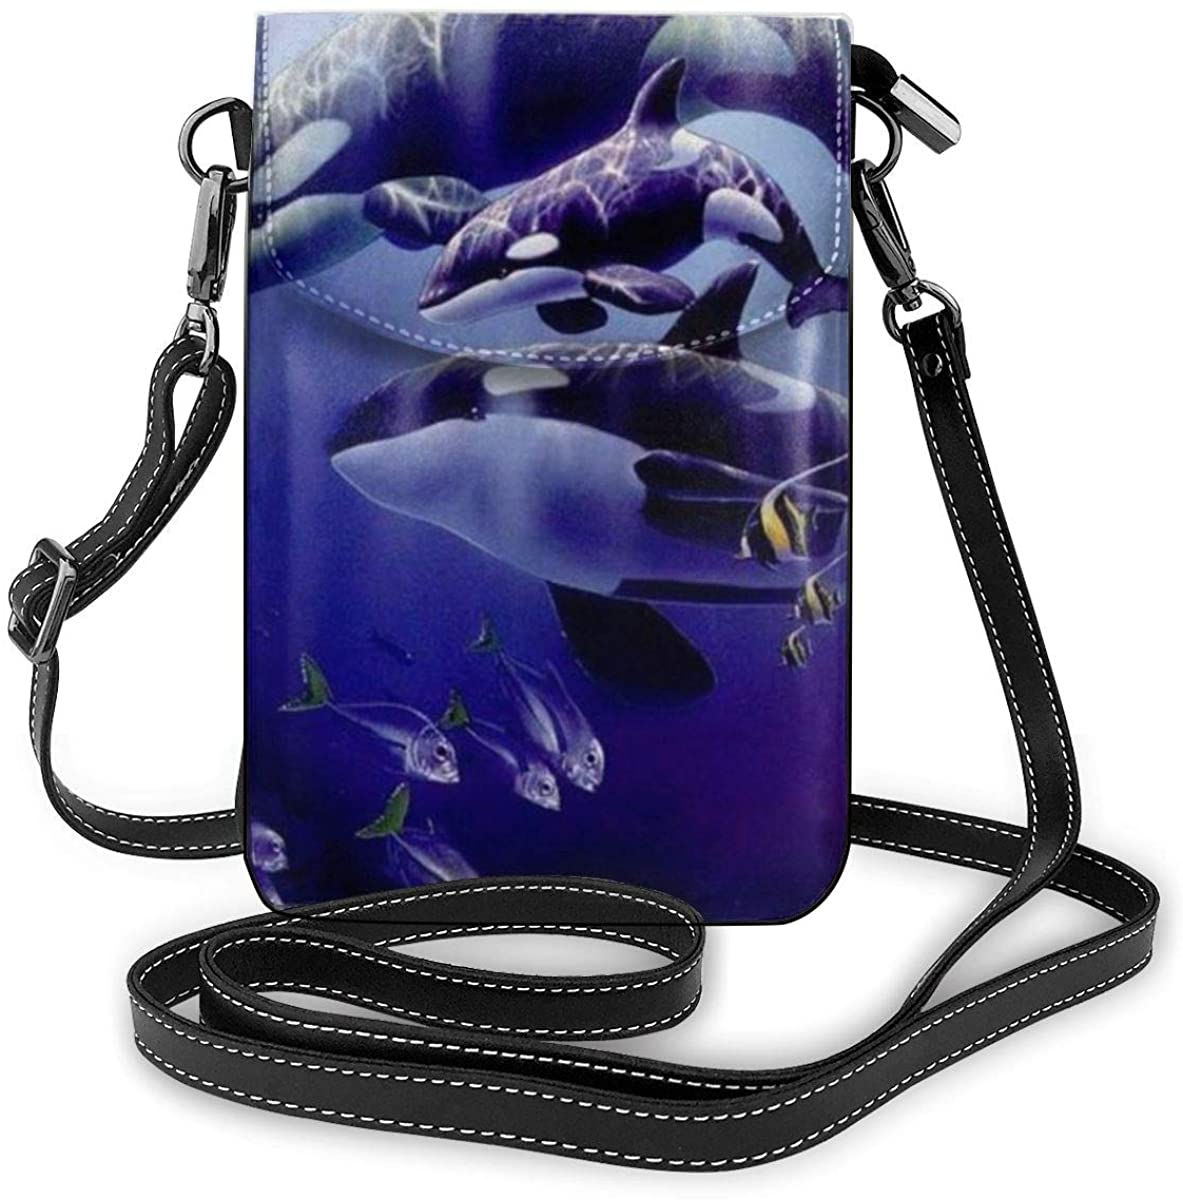 Crossbody Cell Phone Purse Killer Whales Small Crossbody Bags Women Pu Shoulder Bag Handbag